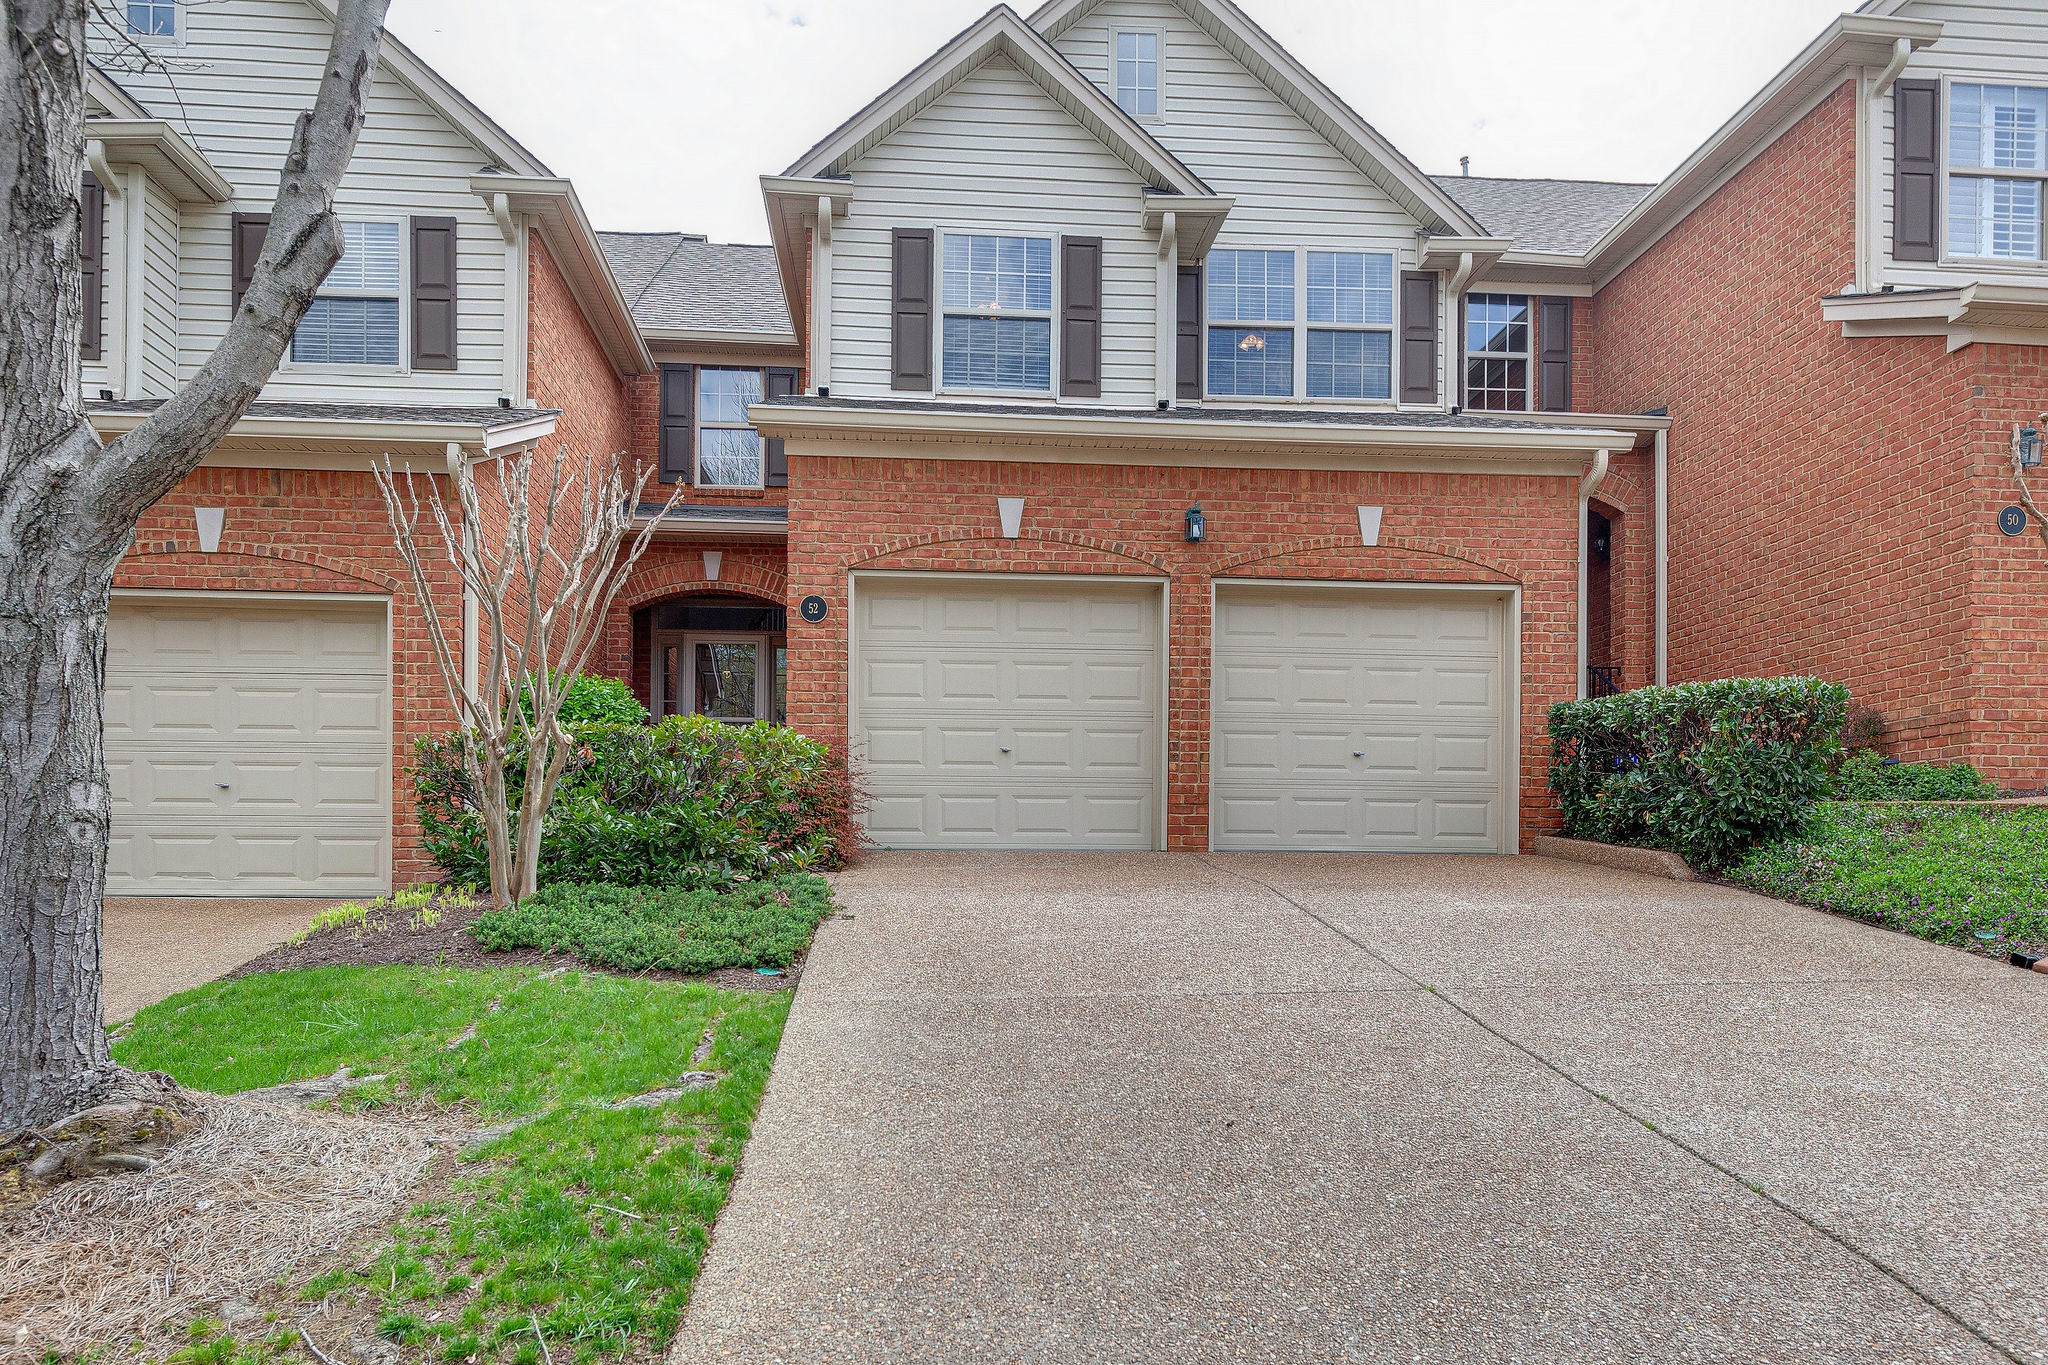 Yummy: Immaculate, Neutral, Move-In Condition. Close to I-65, downtown, Brentwood and Cool springs. Priced to sell. Great opportunity for this location and price range